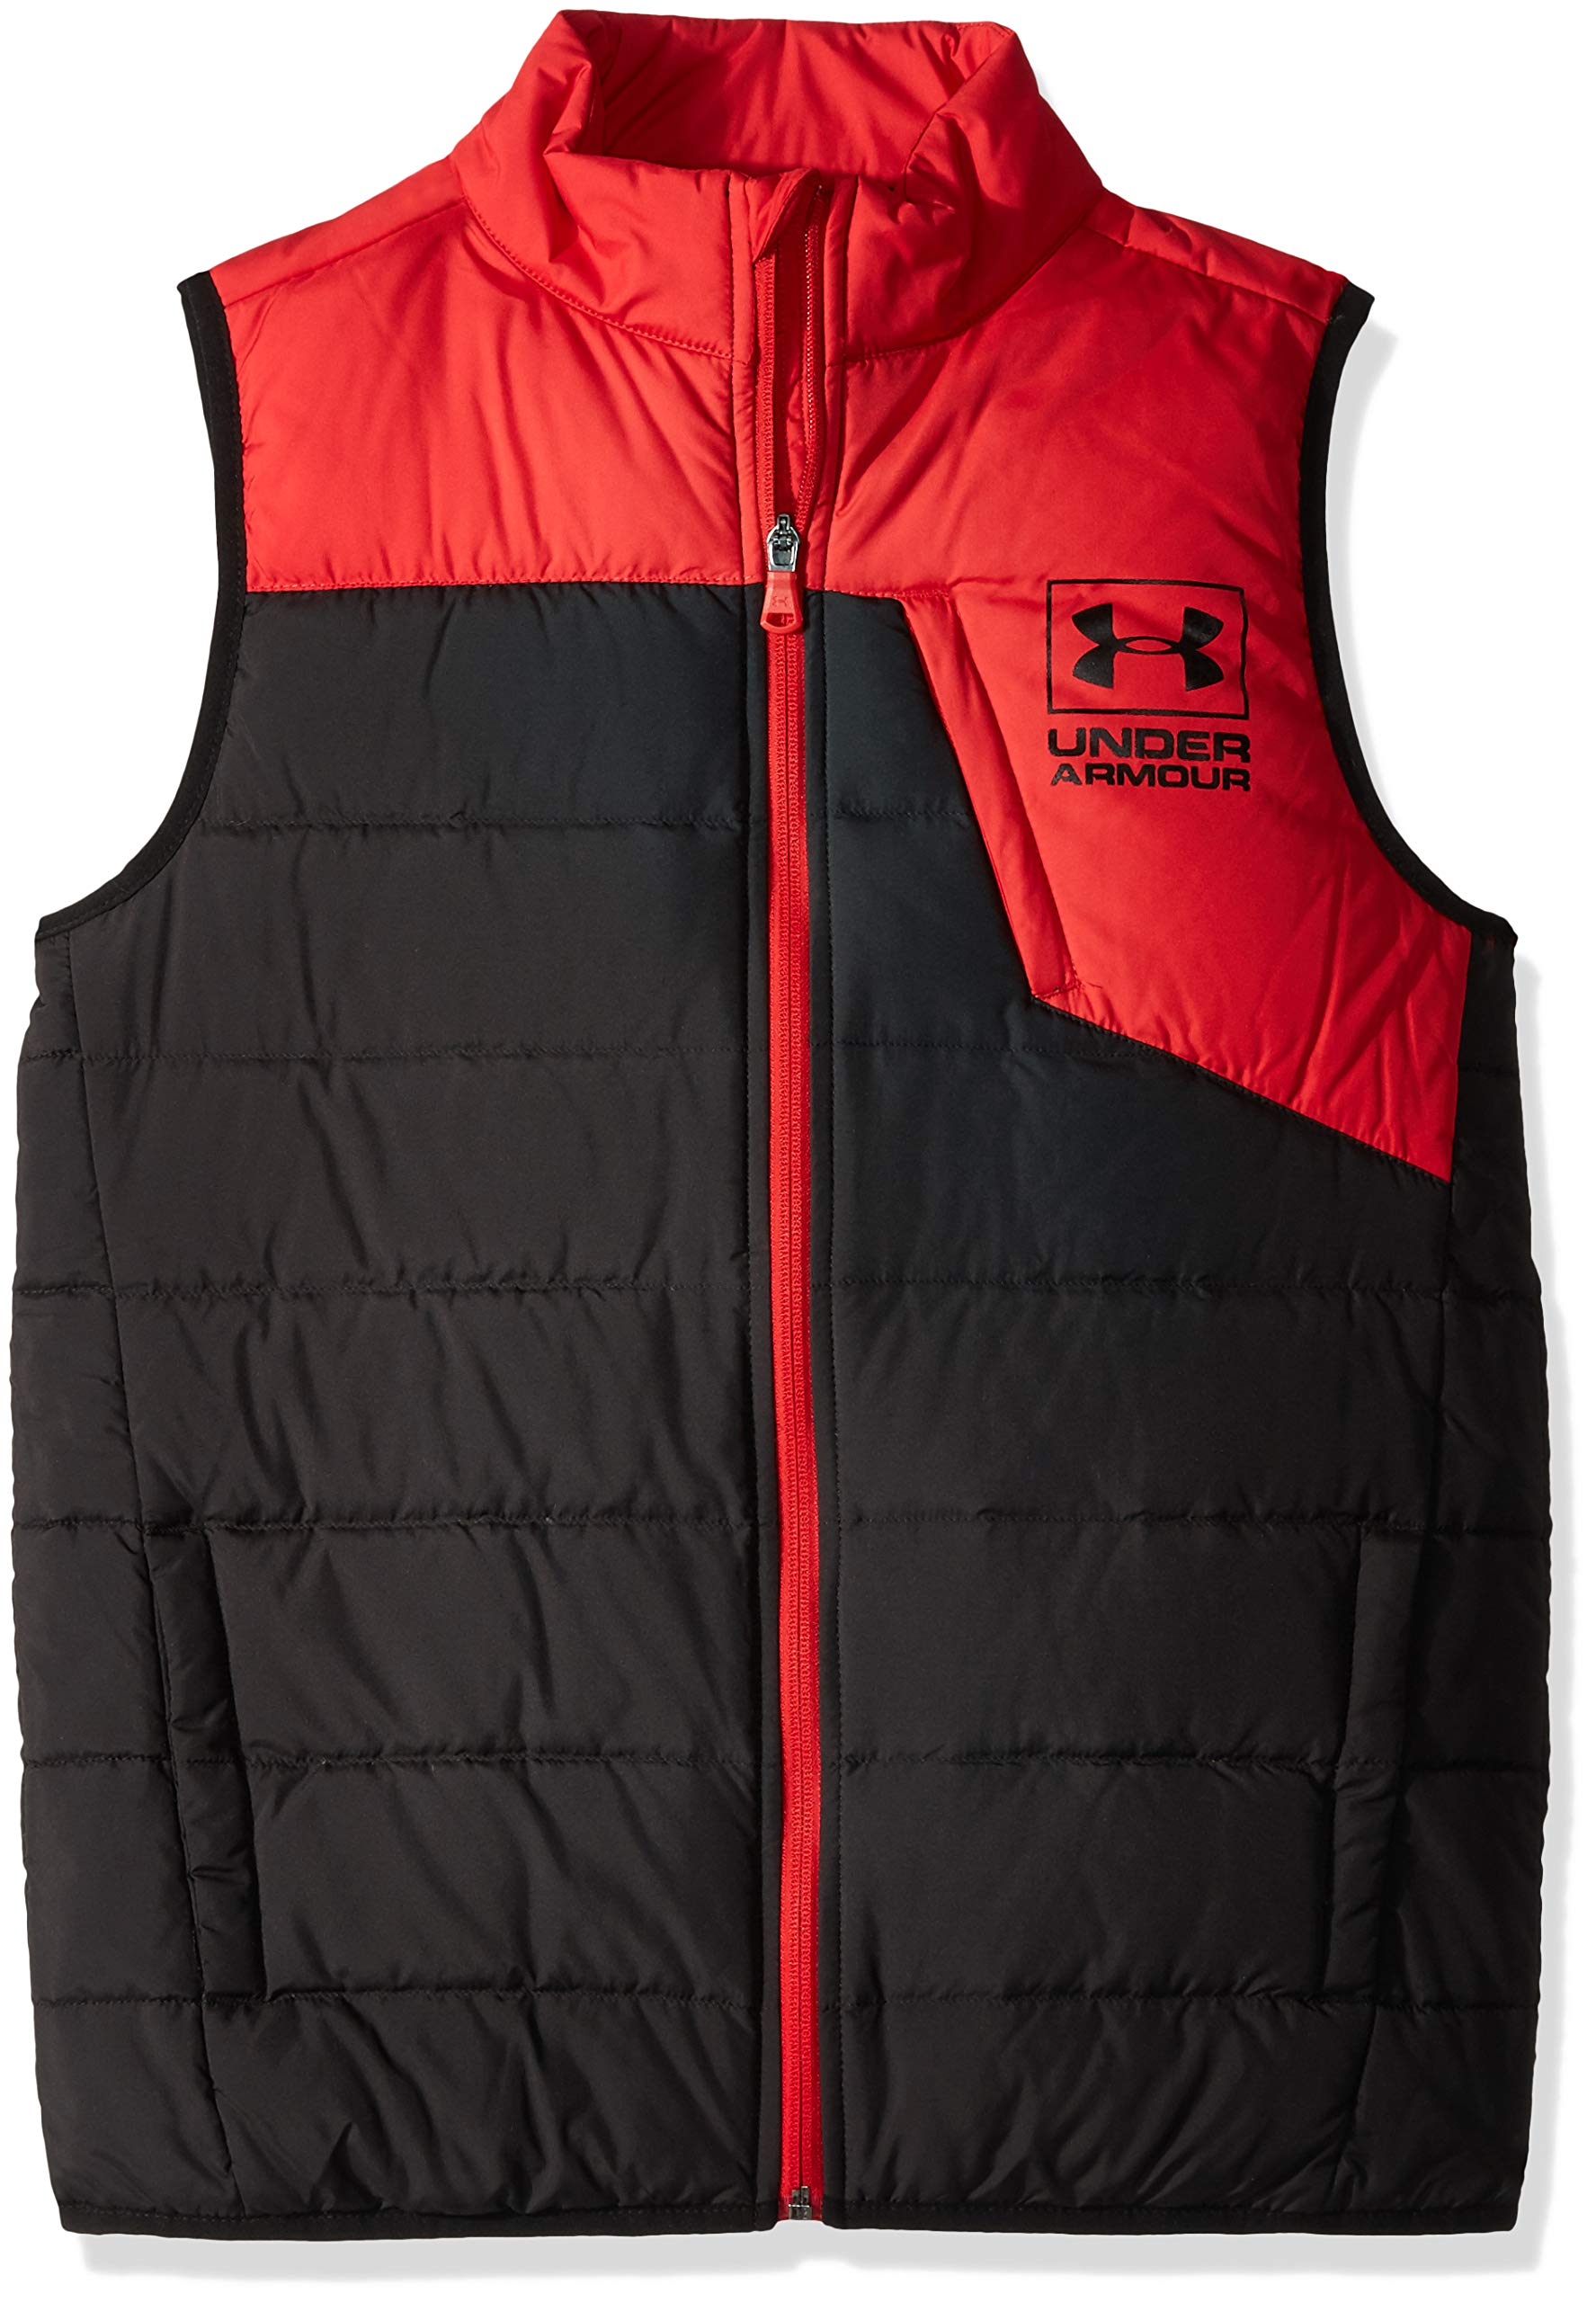 Under Armour Boys' Big Swarmdown Vest, red, Small (8) by Under Armour